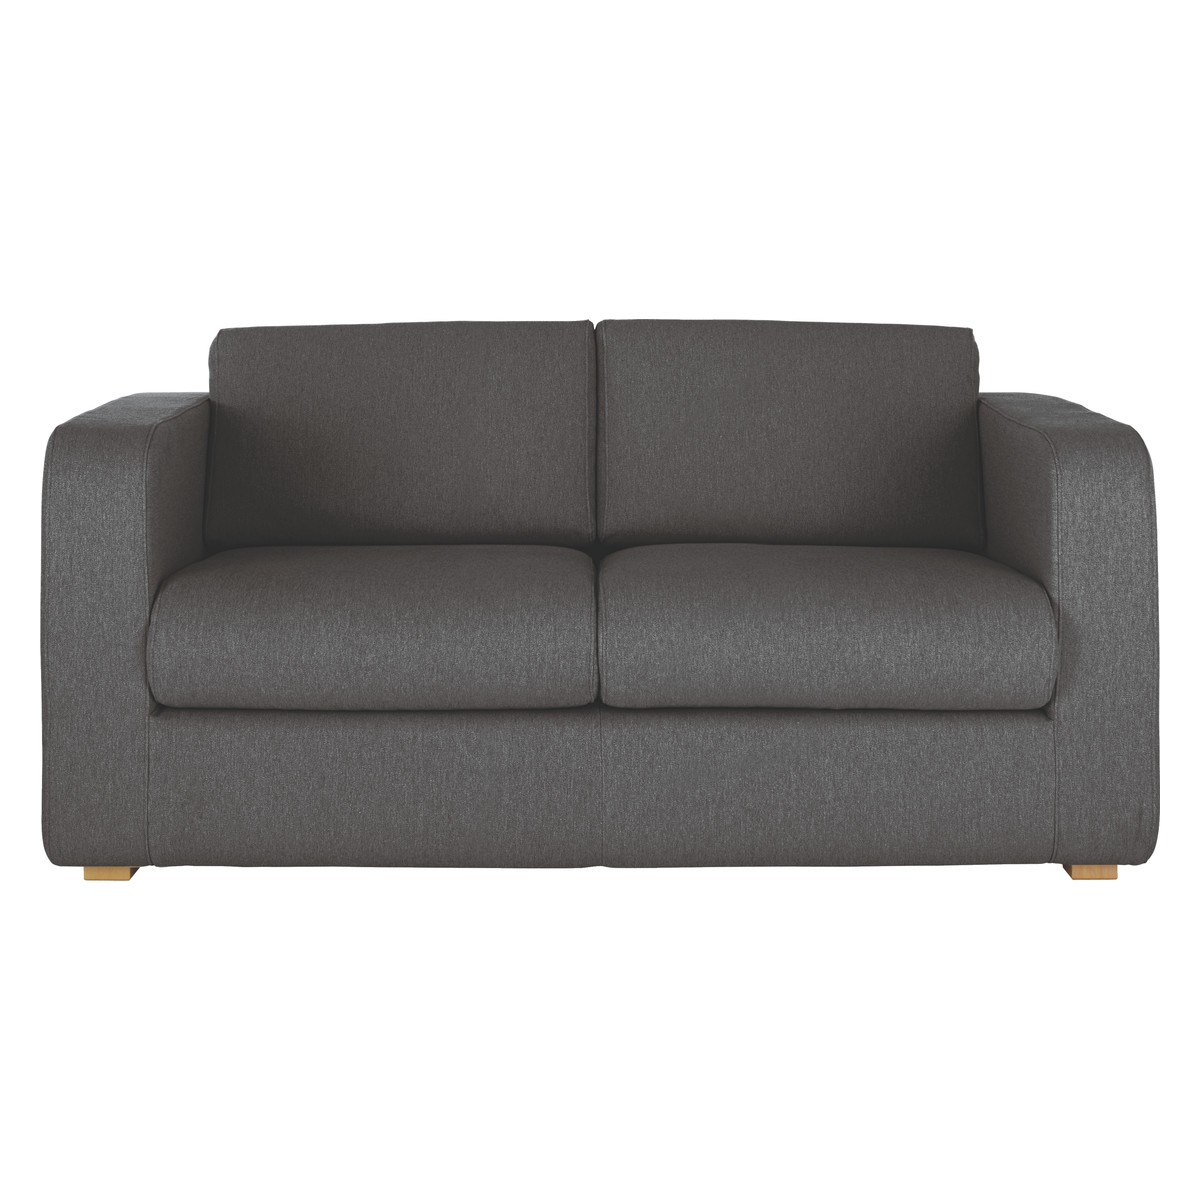 2 seater sofa hover to zoom KRPDUWS